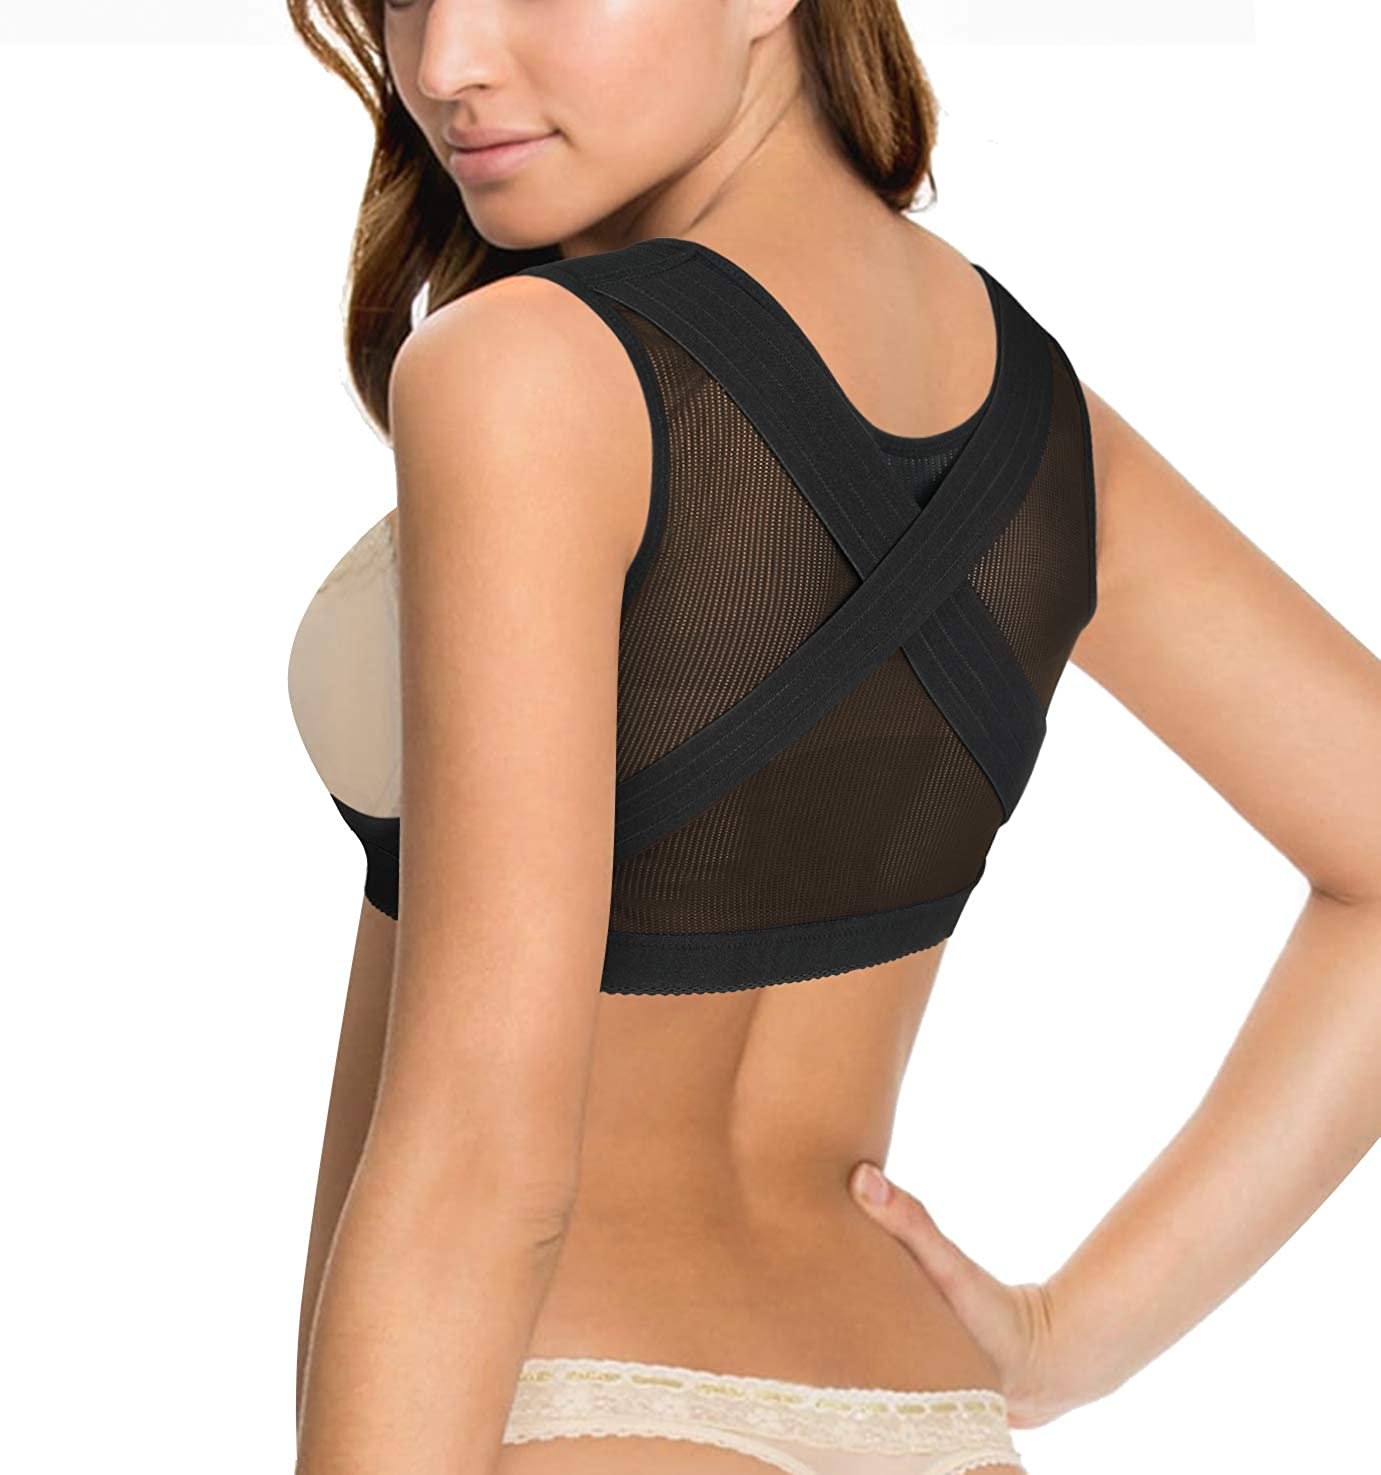 BRABIC Chest Up Shapewear for Women Tops Back Support Posture Corrector Under Clothes